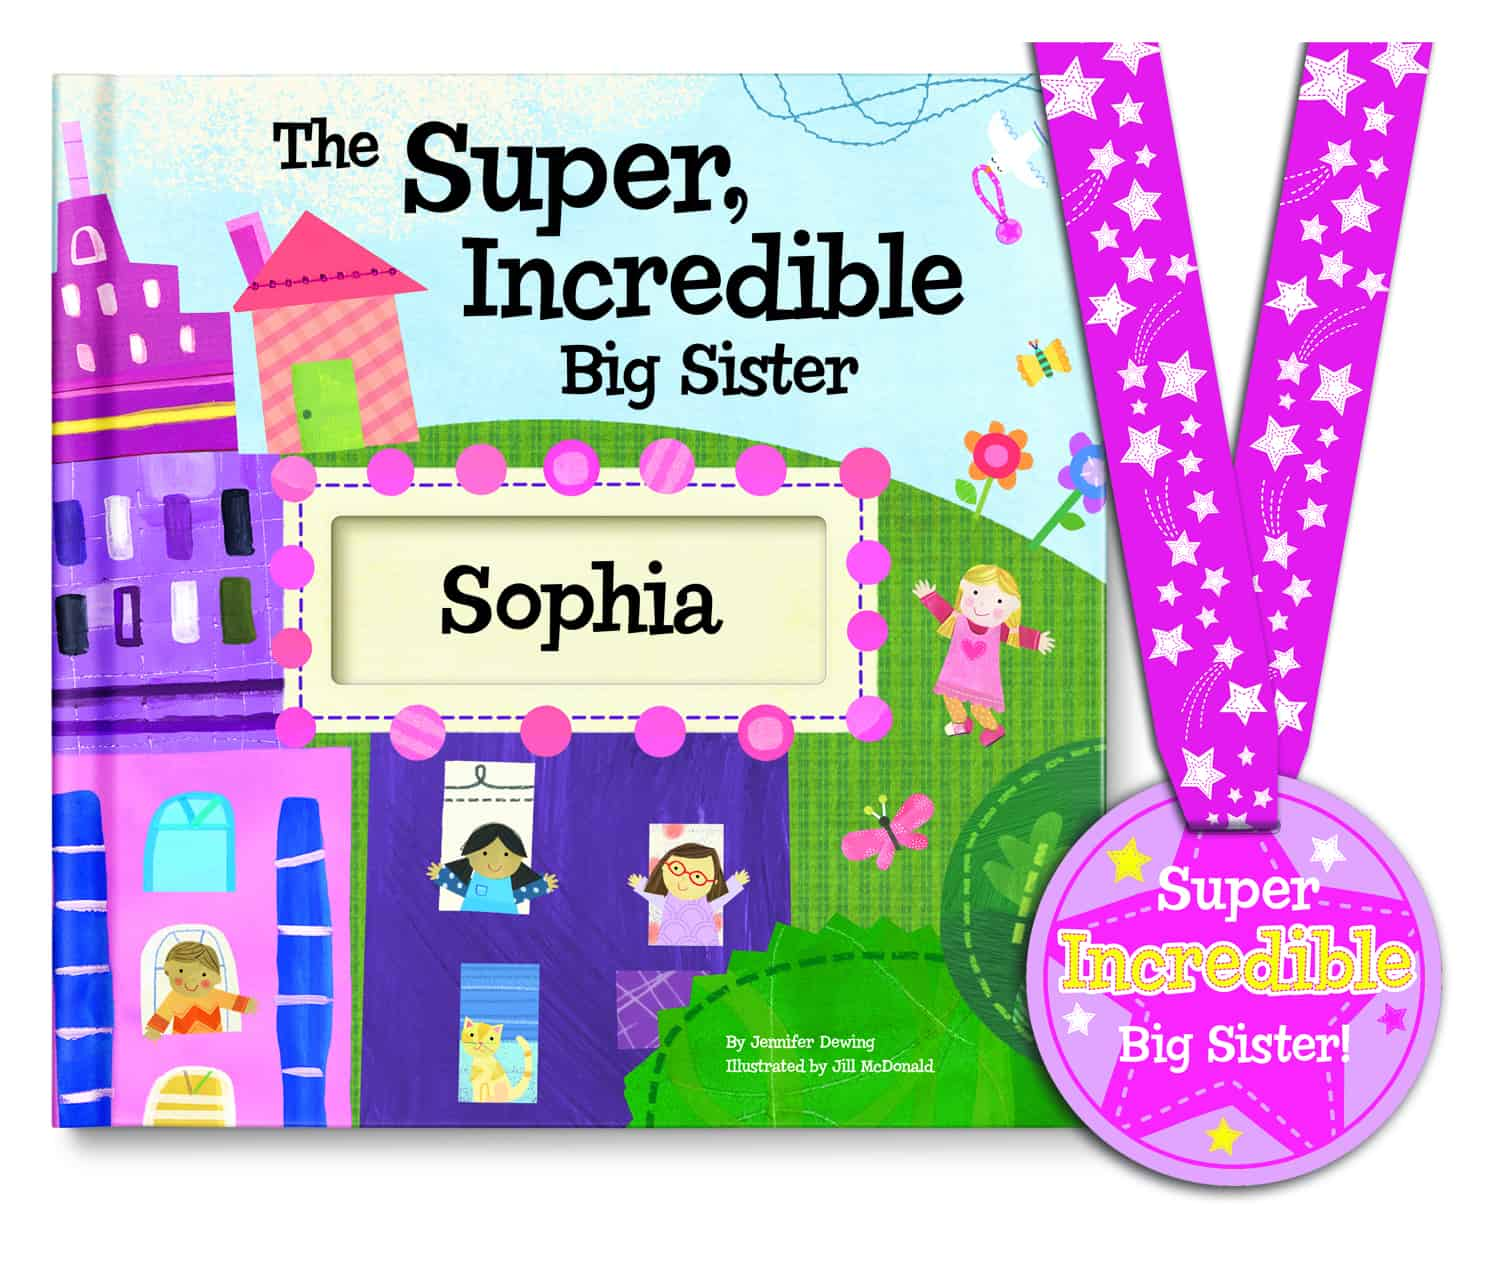 The Super, Incredible Big Brother/Sister personalized book from I See Me! #Giveaway